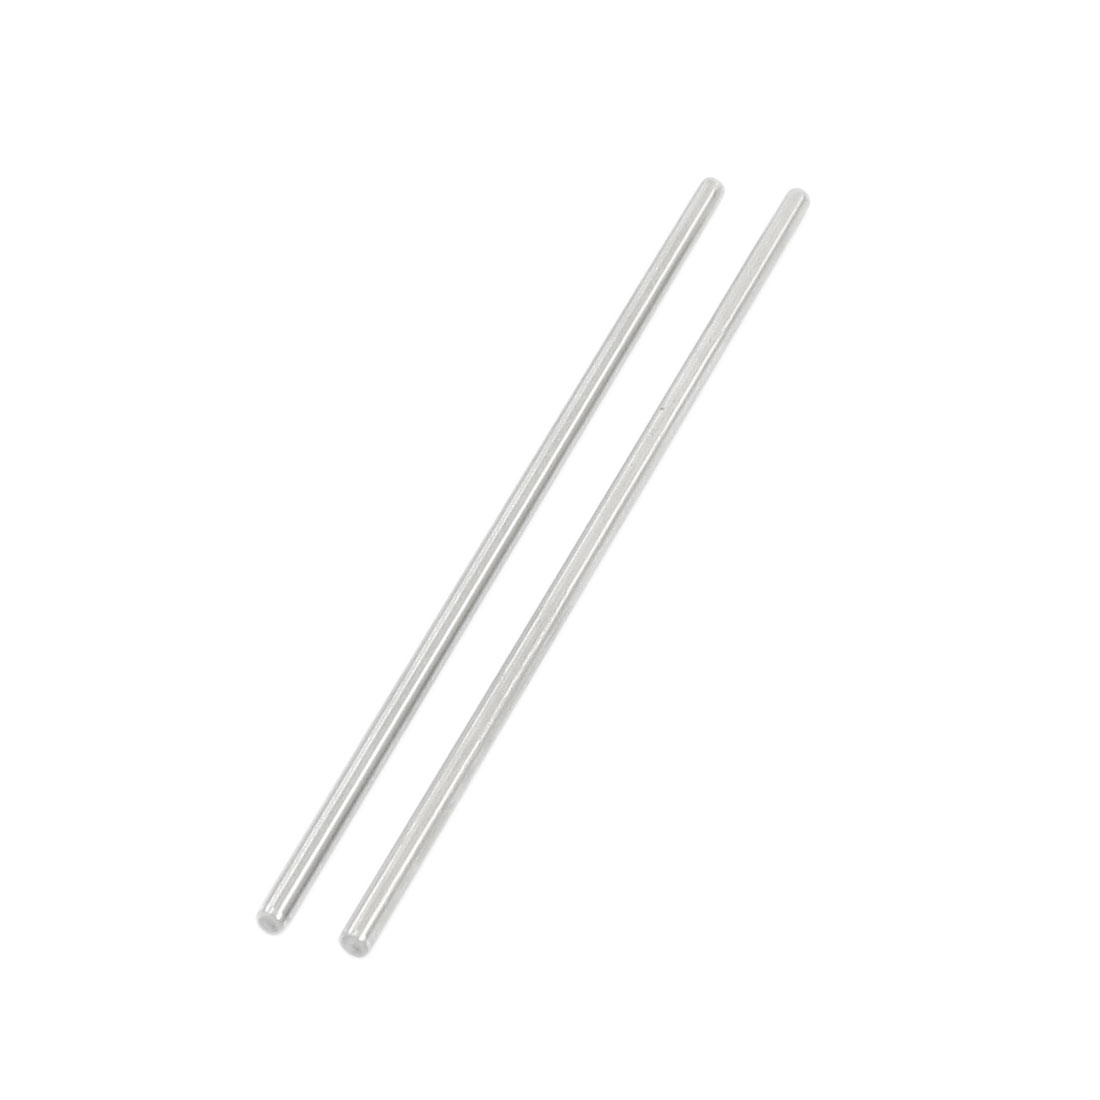 2Pcs 3mm Diameter Stainless Steel Motion Axle Circular Round Rod Bar 110mm Long